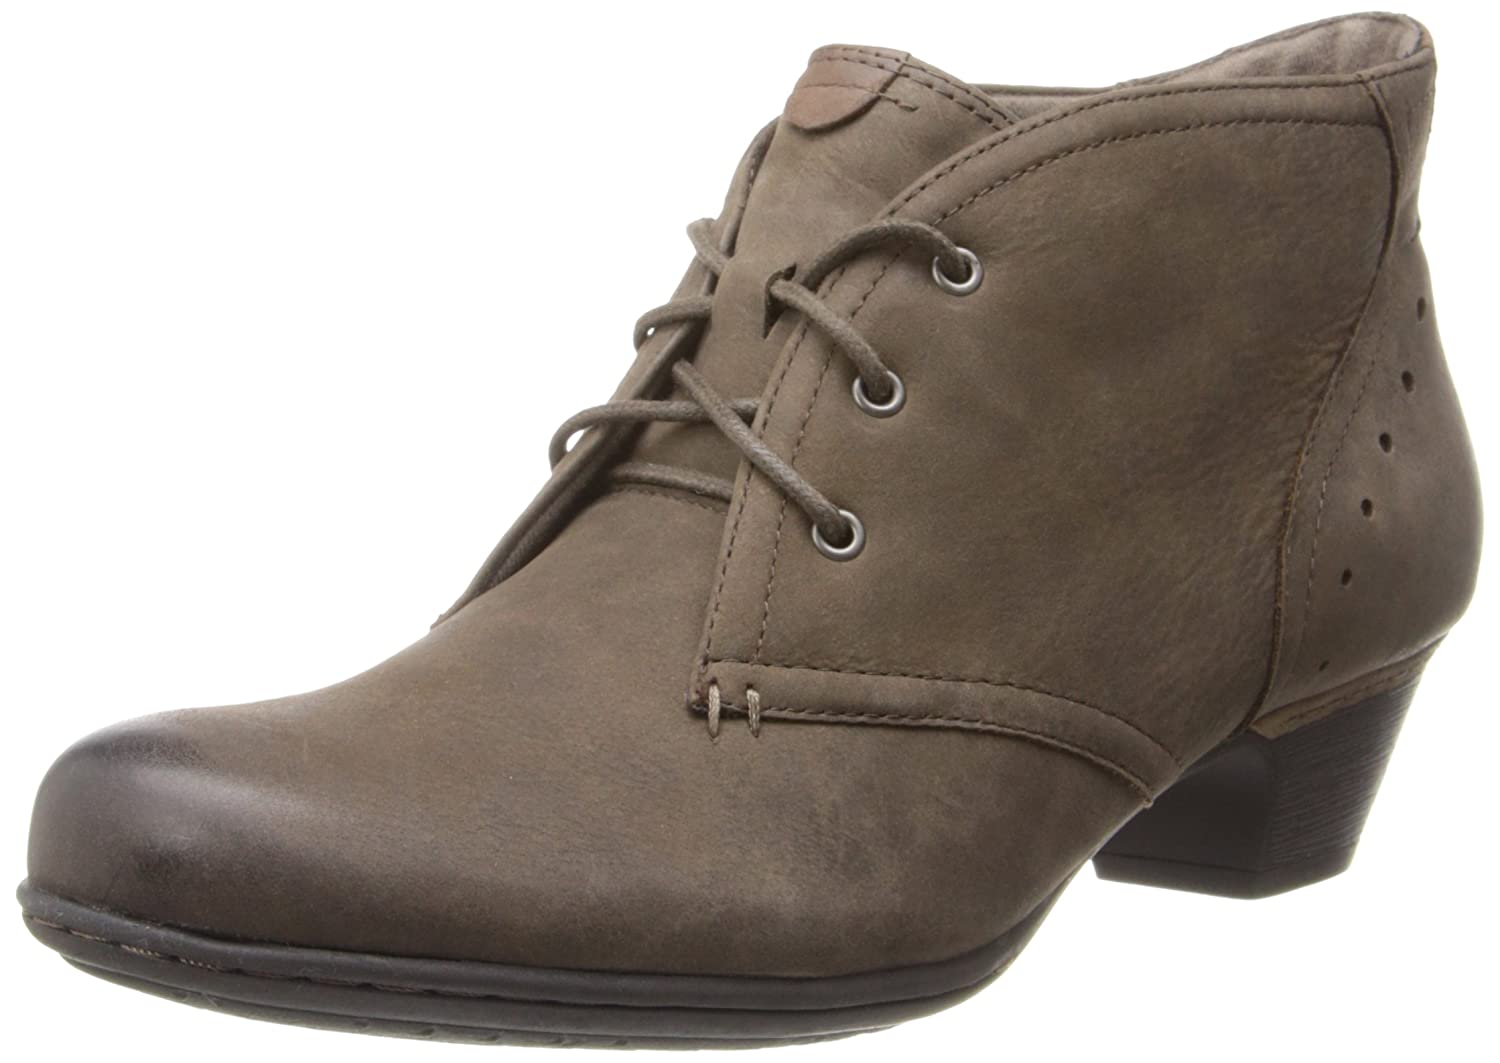 Cobb Hill Rockport Women's Aria-Ch Boot B00IFQYTQM 10 B(M) US|Stone